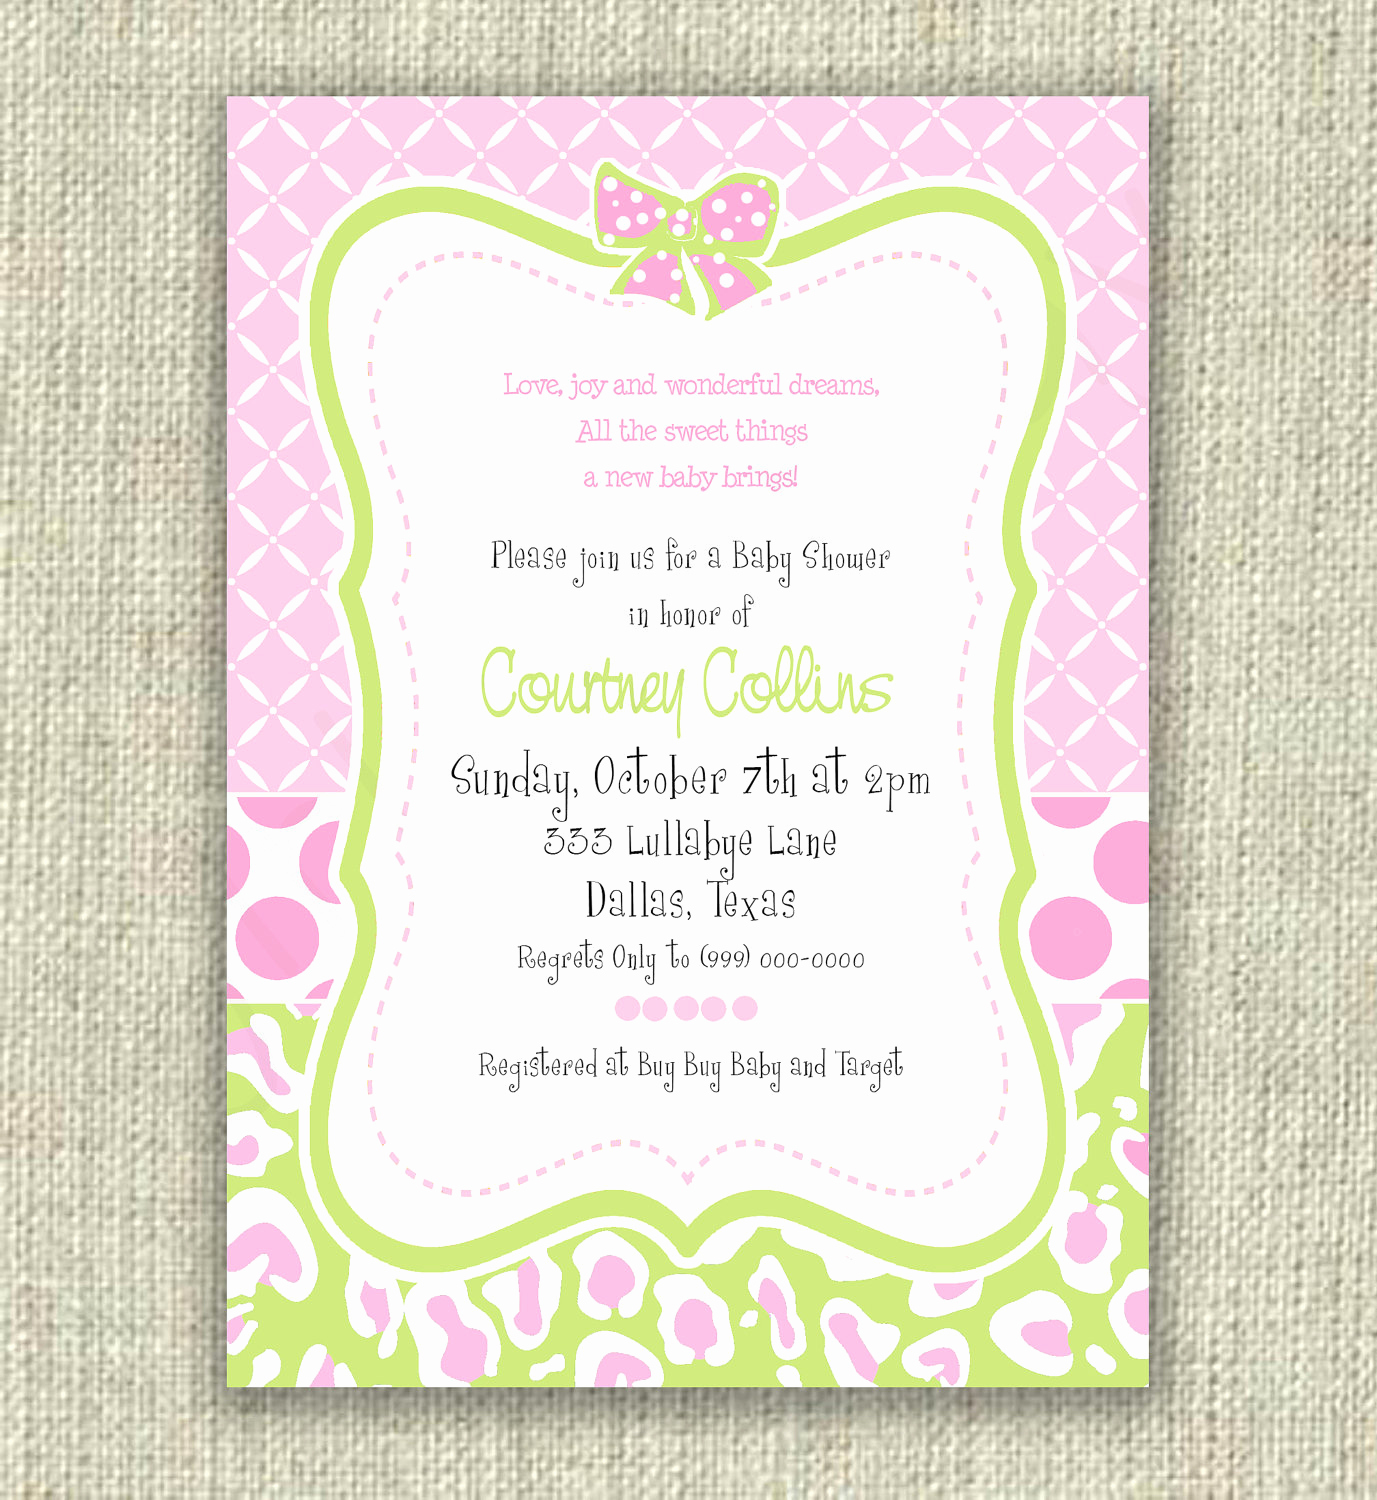 Spanish Baby Shower Invitation Wording Unique Spanish Baby Shower Poems for Invitations • Baby Showers Ideas